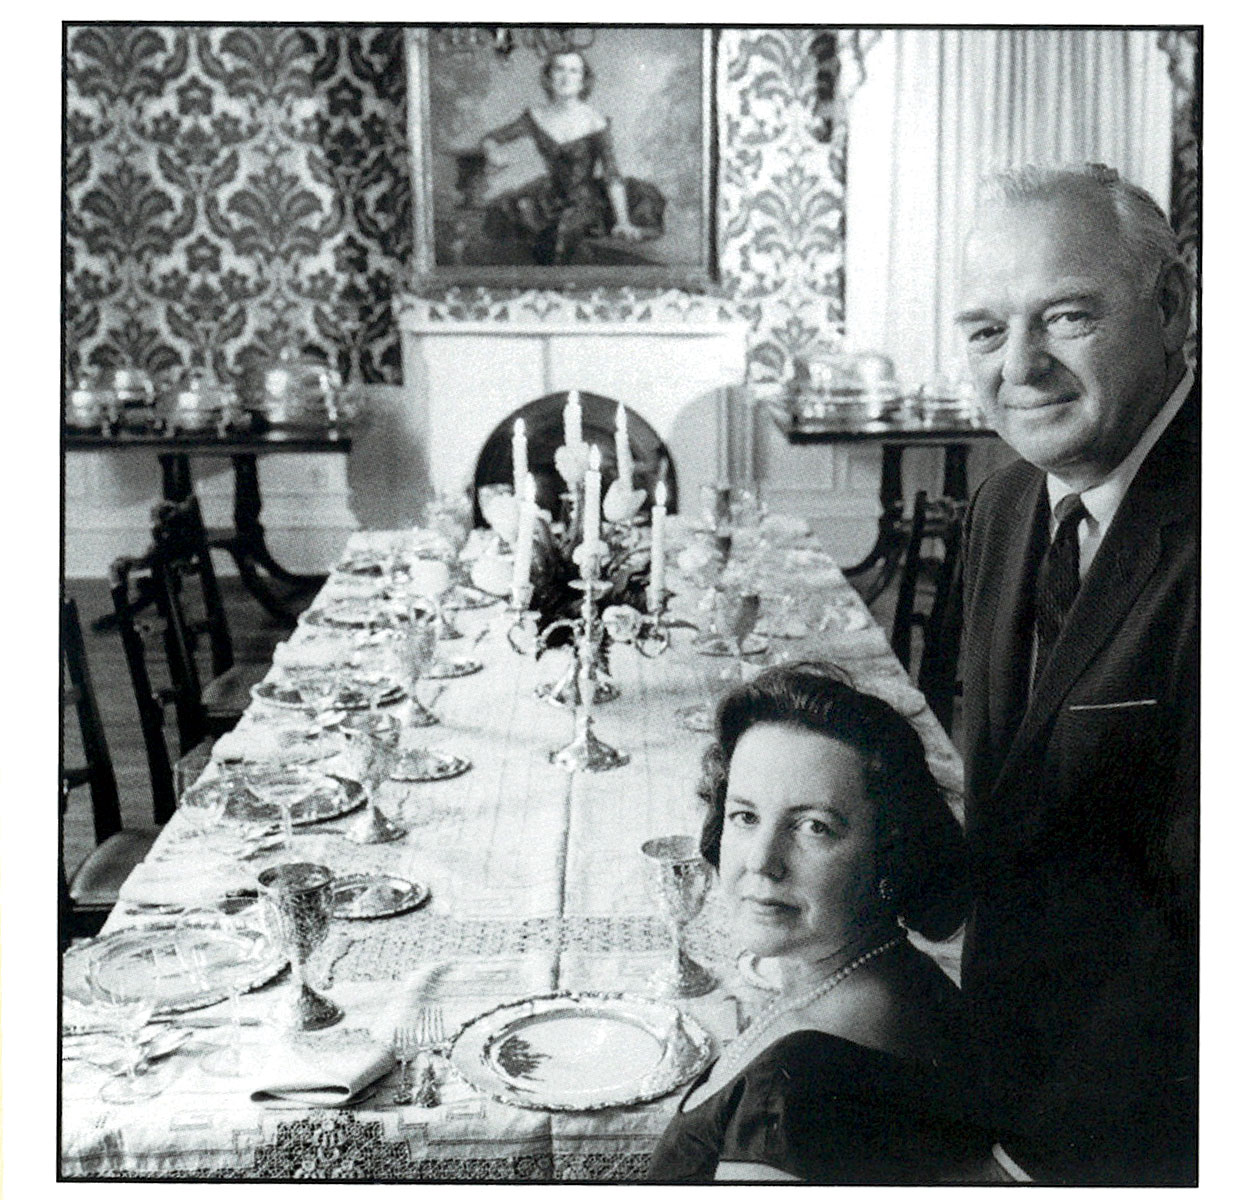 Justine Smith and her husband, Dayton